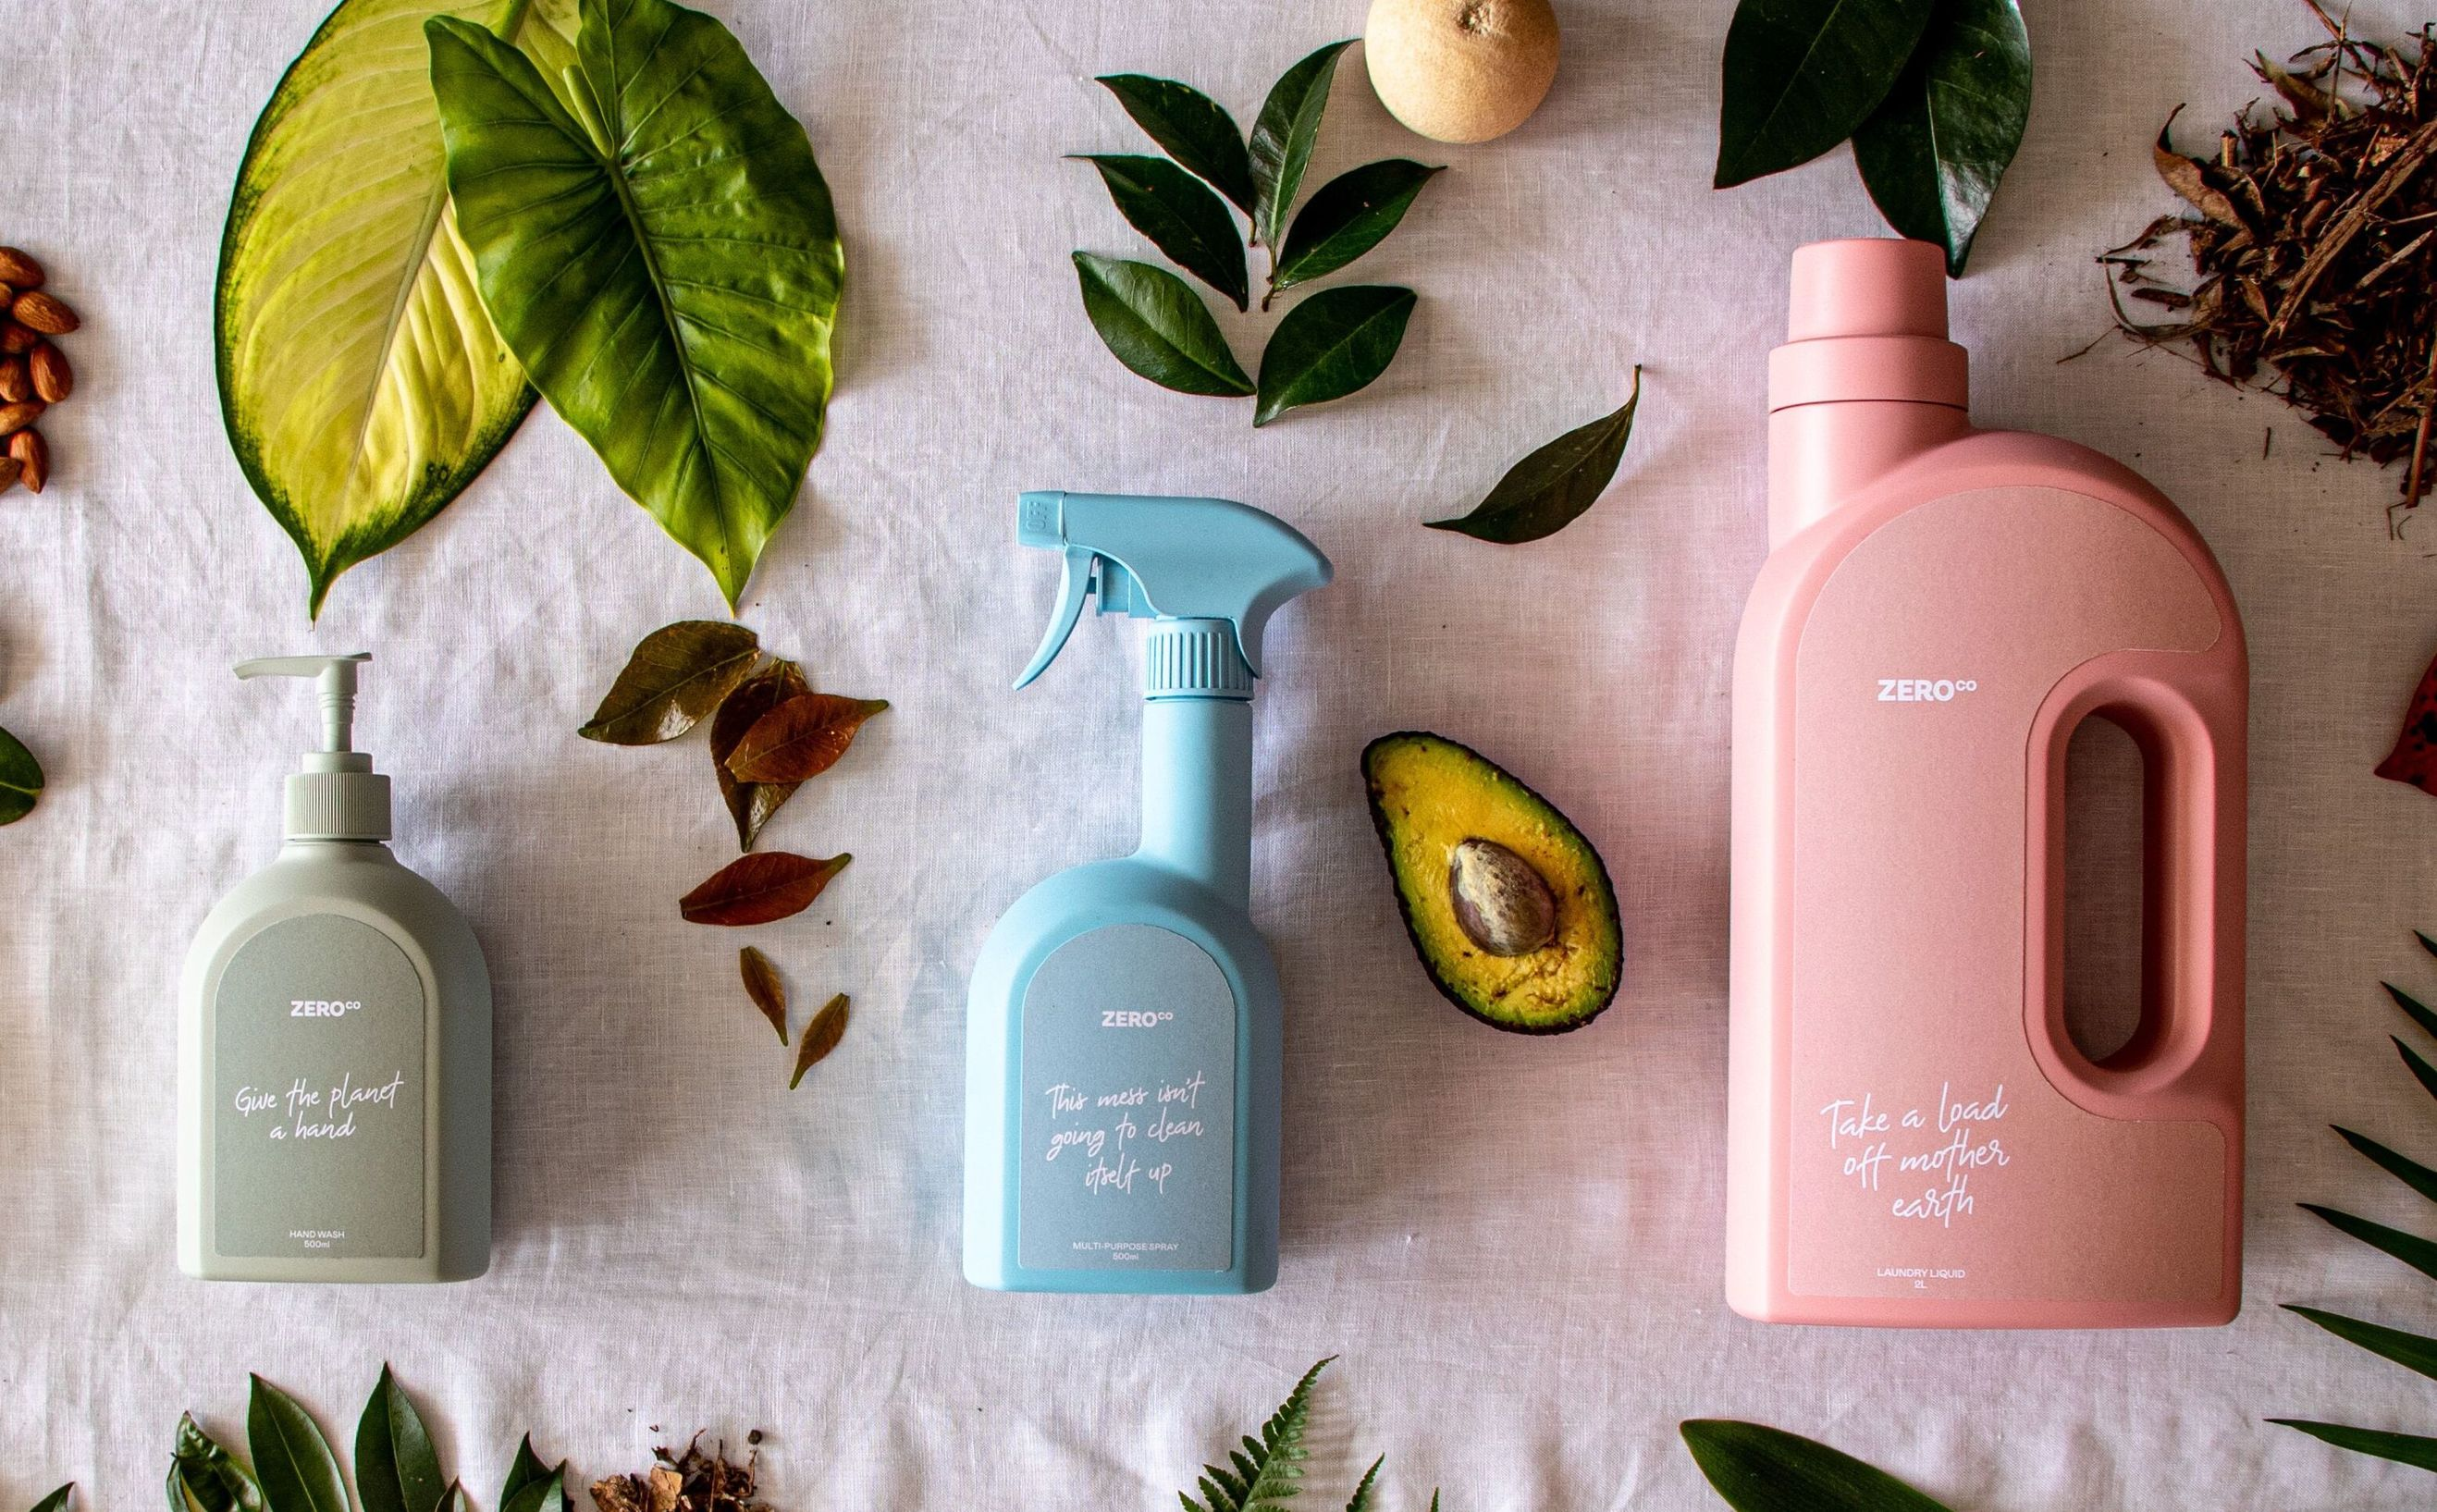 , A startup with the lofty goal of 'eliminating single-use plastics in every Aussie kitchen, bathroom and laundry' has raised $60,000 in crowdfunding on day one   Business Insider, The Circular Economy, The Circular Economy